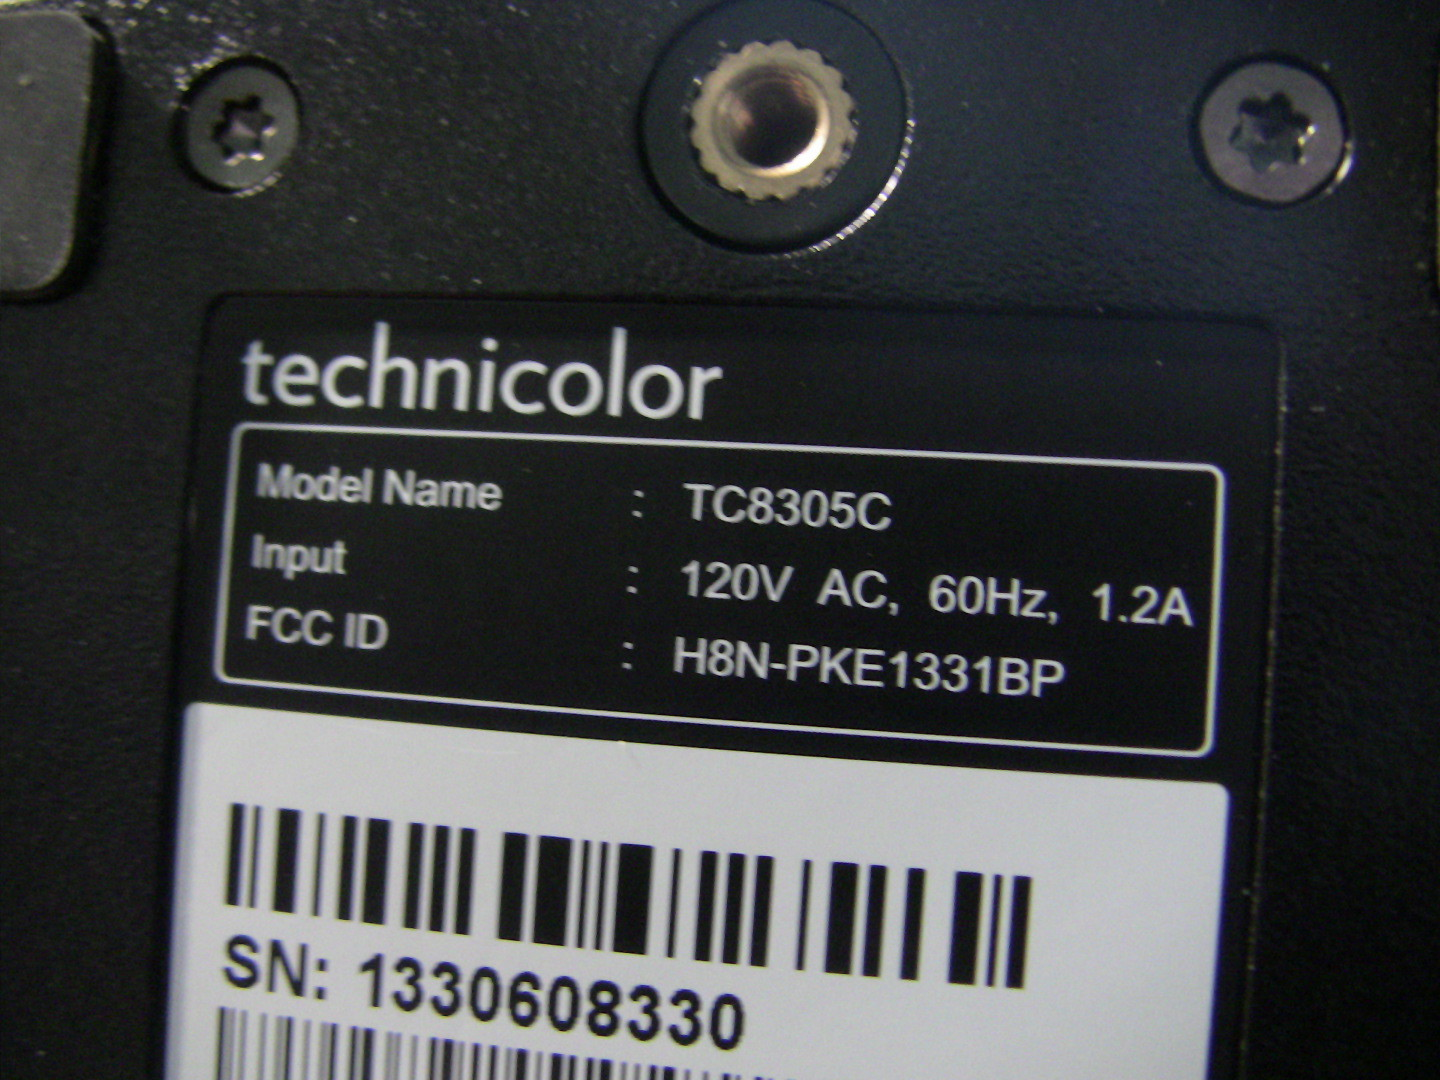 Xfinity Technicolor Wireless Modem Router and 50 similar items